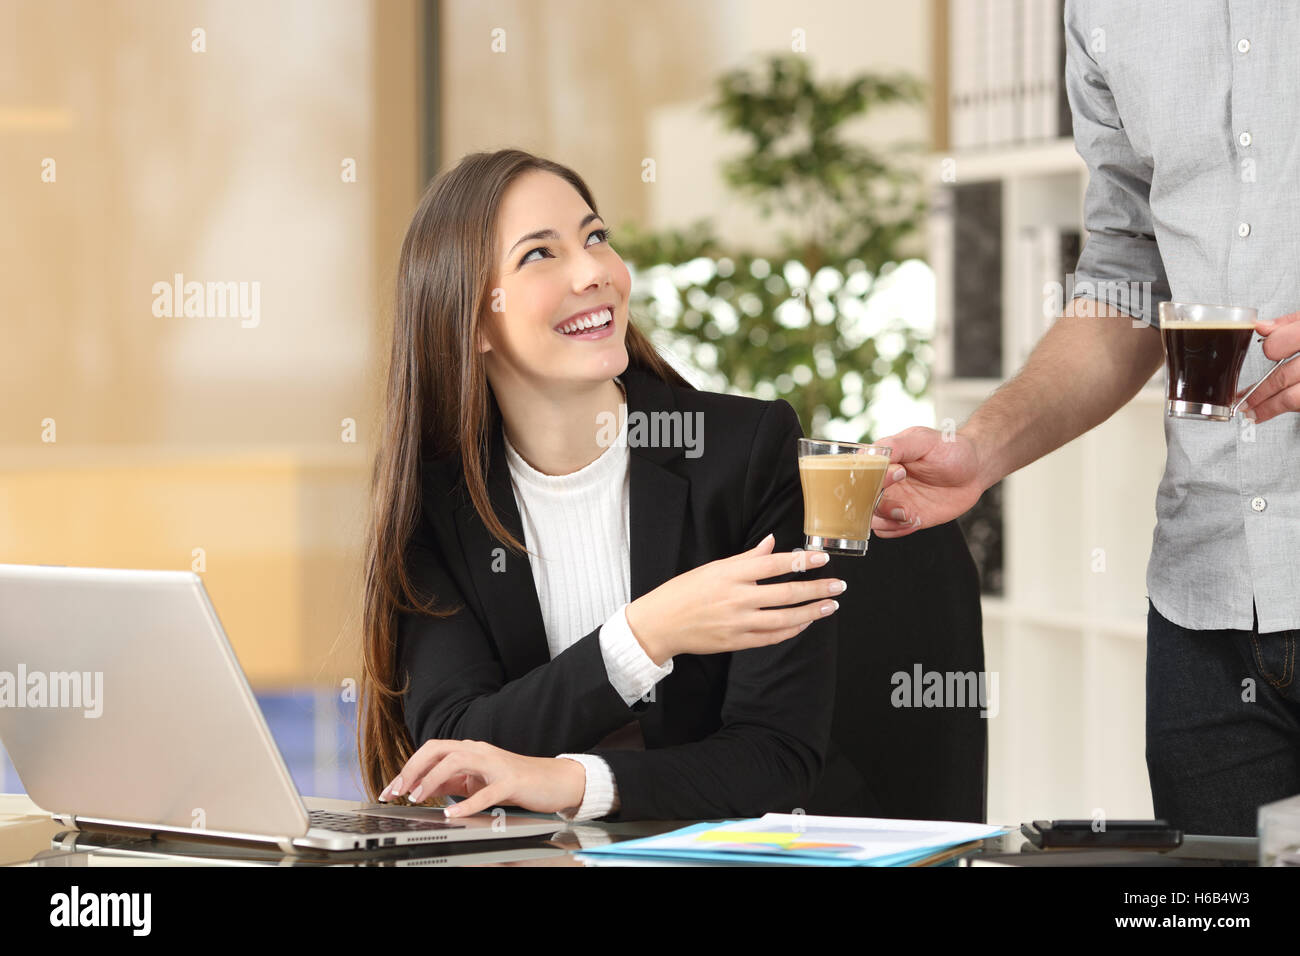 Businessman giving coffee to his colleague who is working with a laptop at office - Stock Image